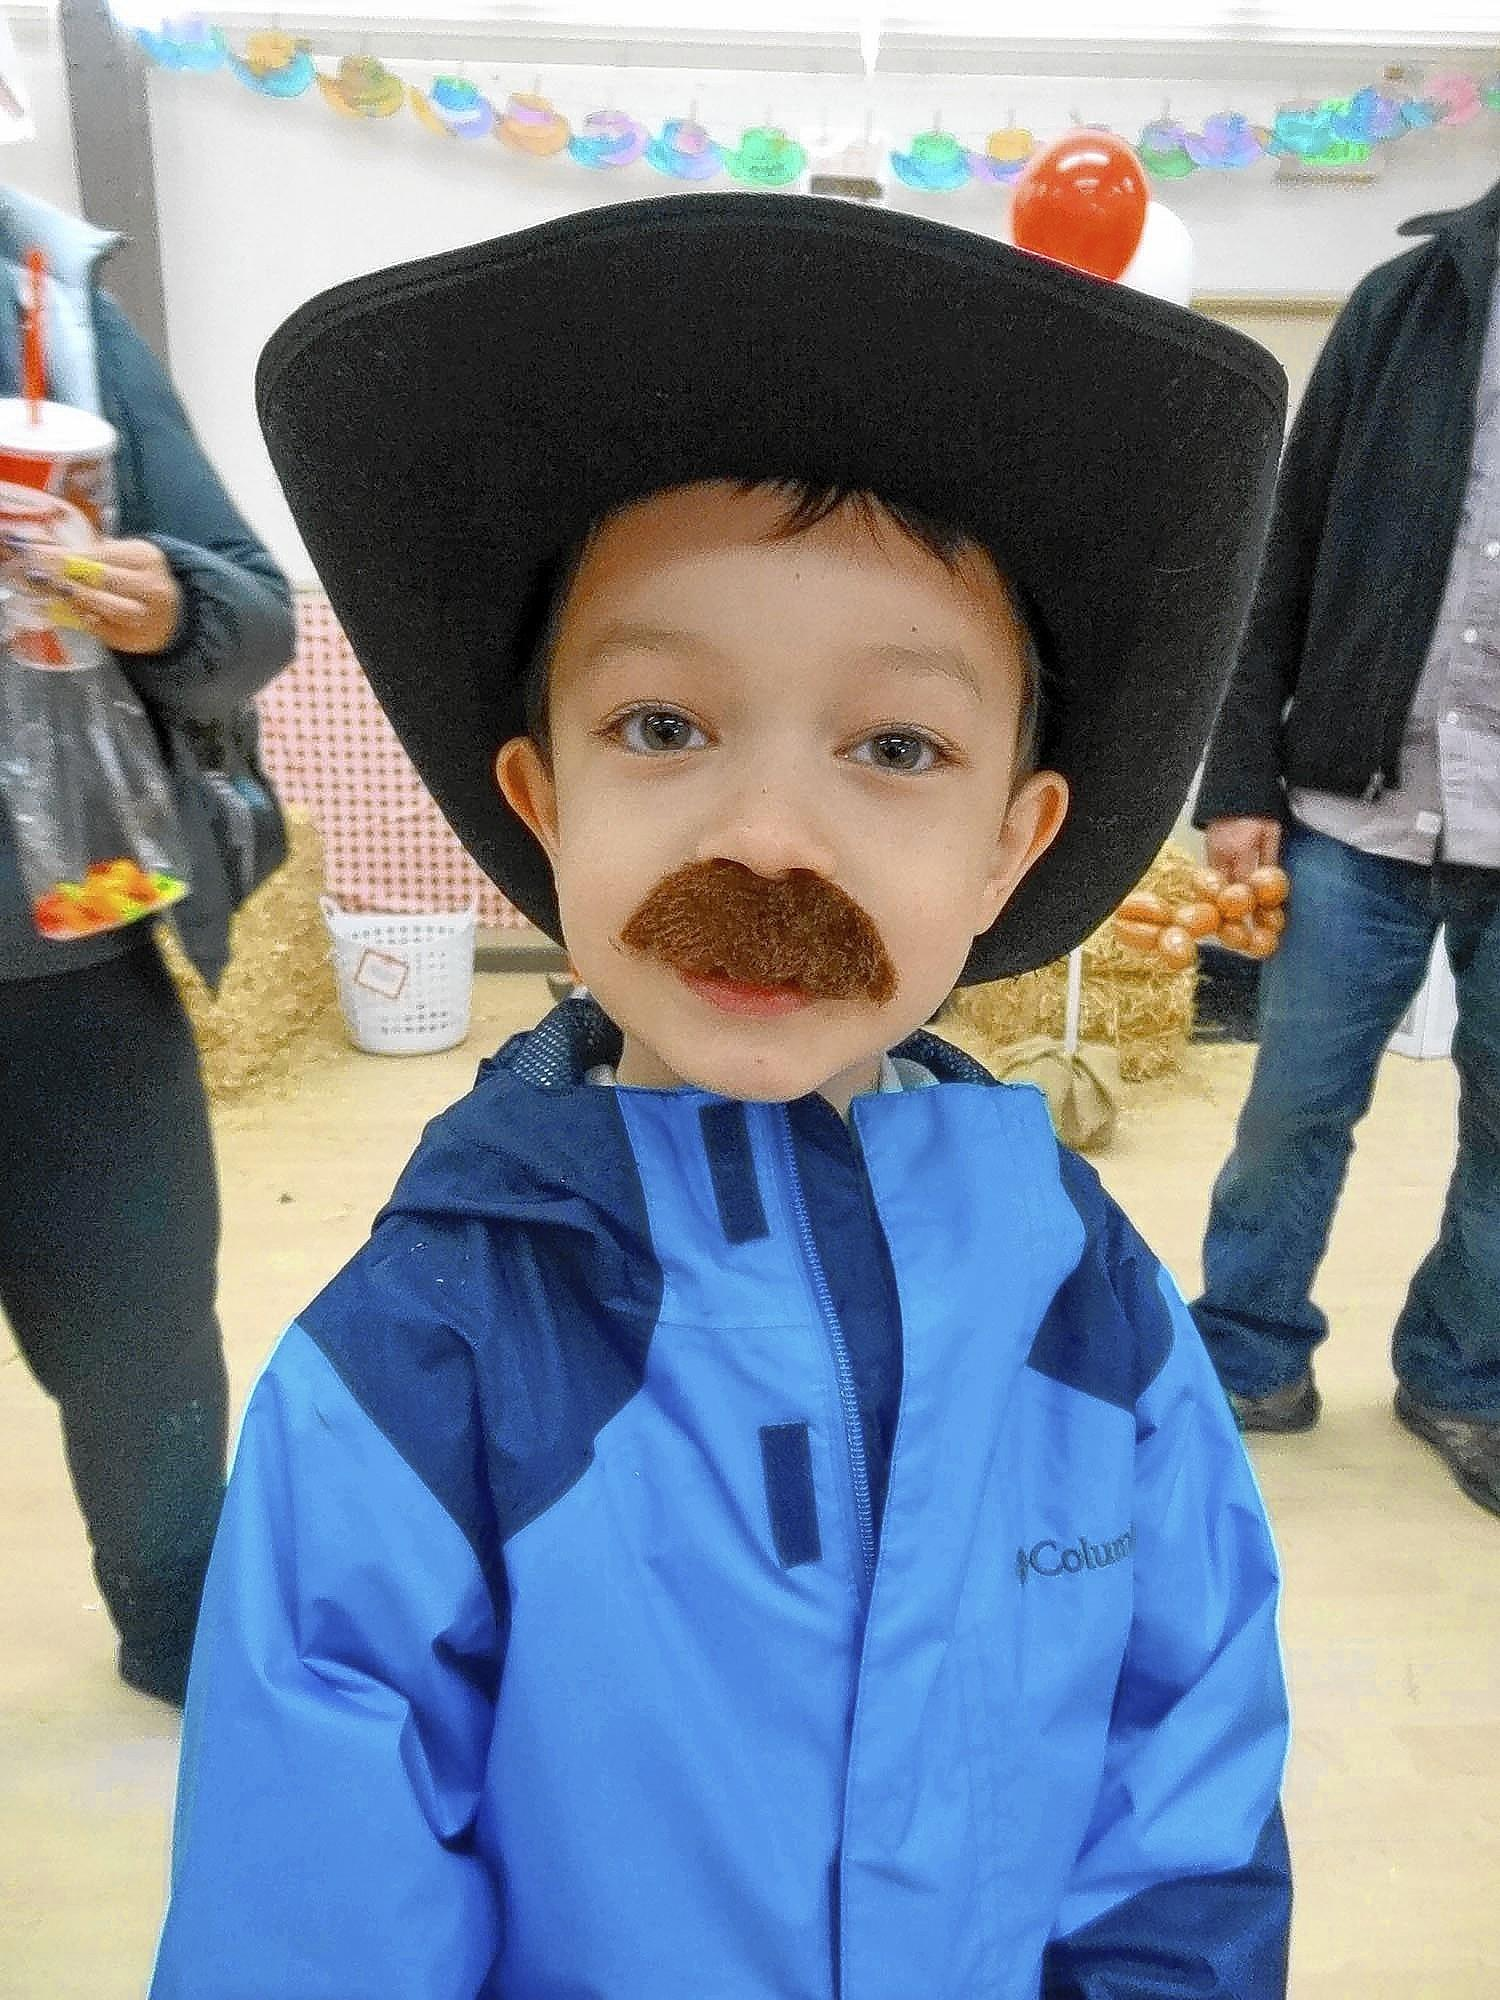 Michael Johnson, 5, gets into the cowboy spirit during the 21st Annual Western Round Up at the La Cañada Flintridge Community Center Preschool this month.